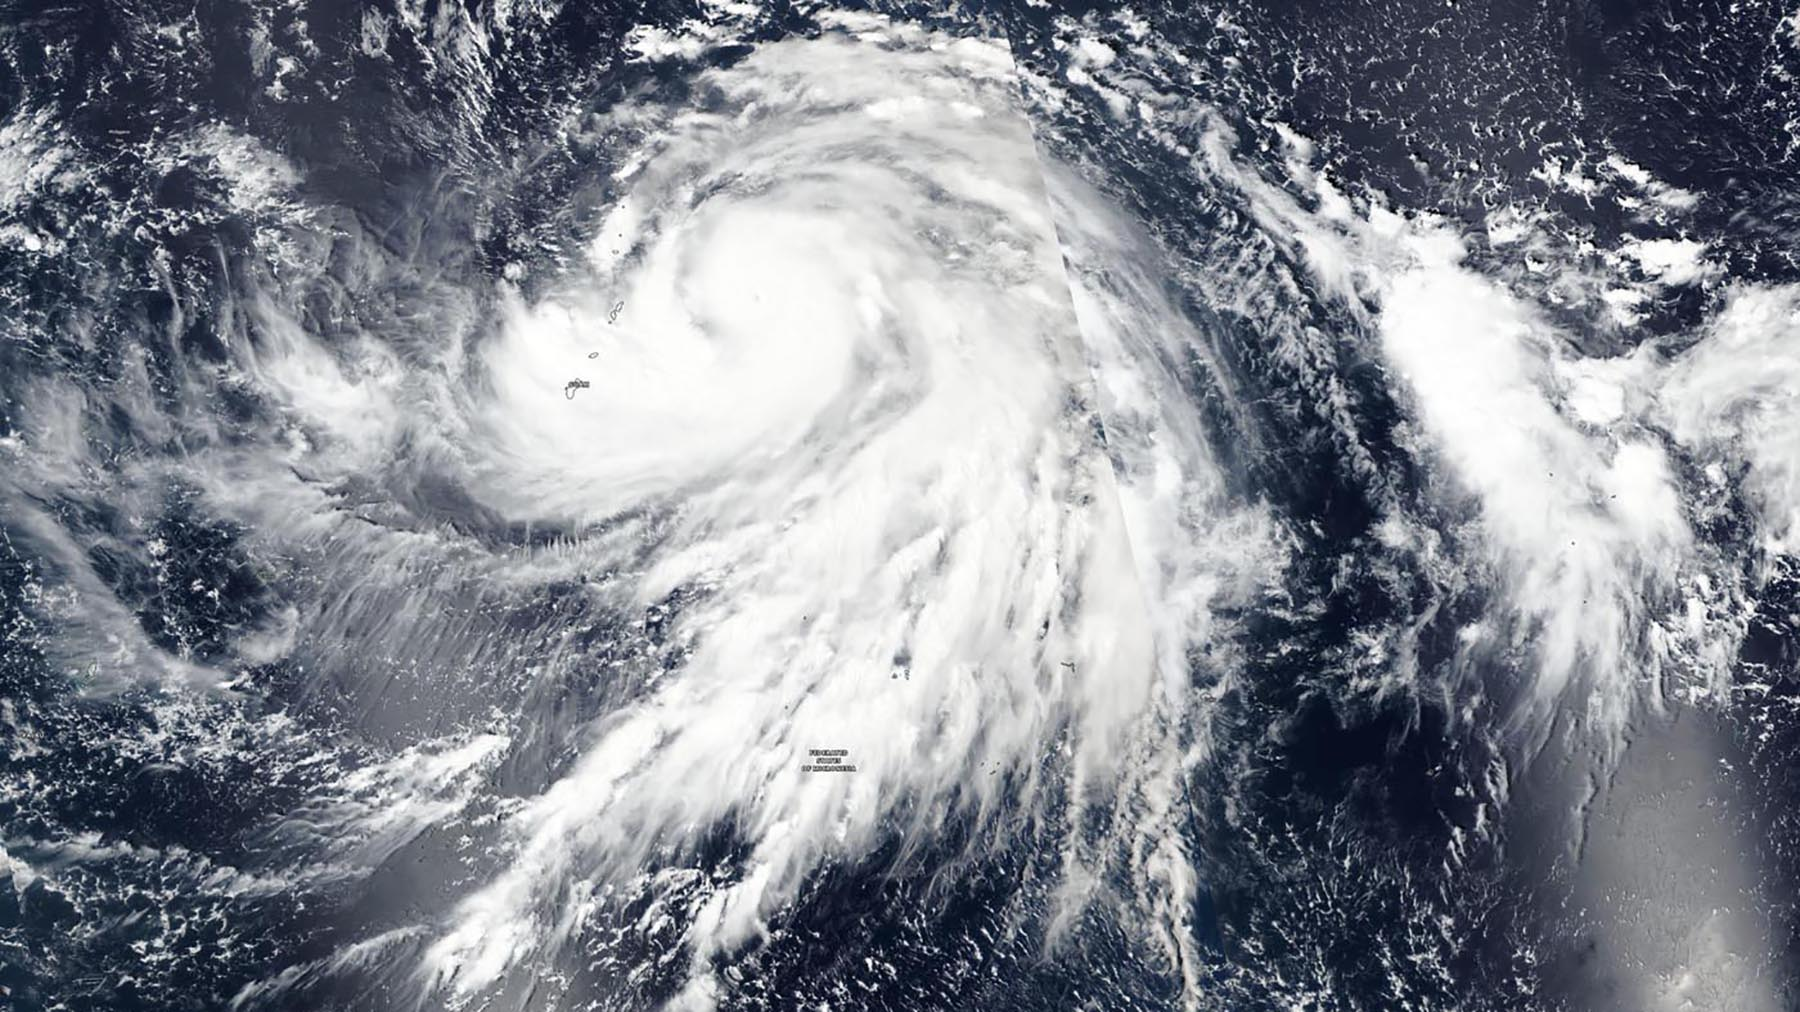 A satellite image shows Super Typhoon Hagibis on Oct. 7, 2019 as it impacts Guam and the Federated States of Micronesia. (Photo by NASA Worldview, Earth Observing System Data and Information System (EOSDIS))